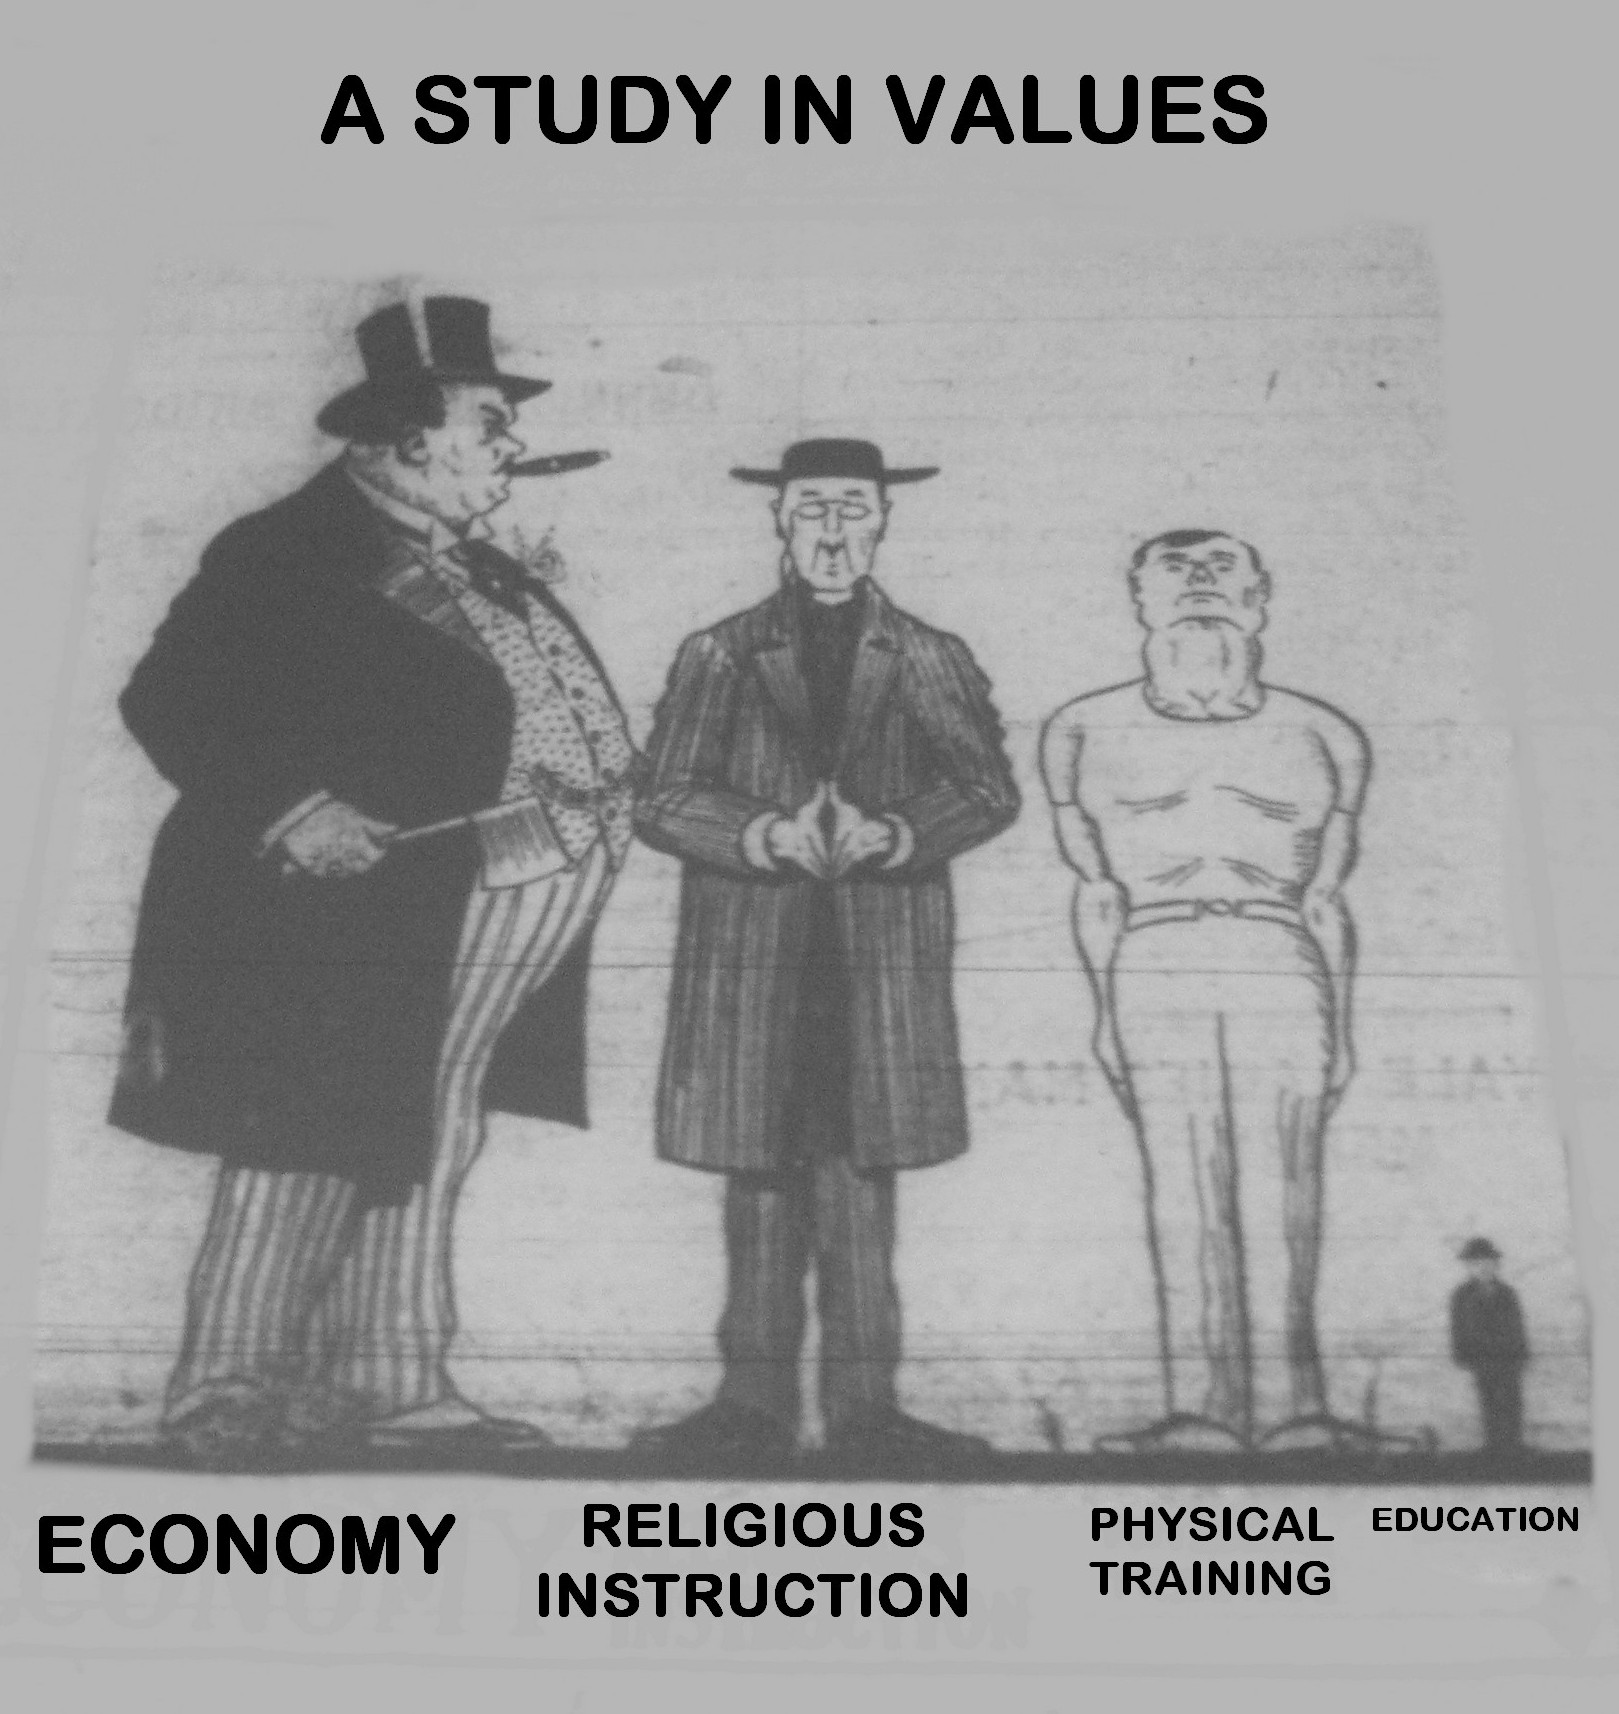 STUDY IN VALUES